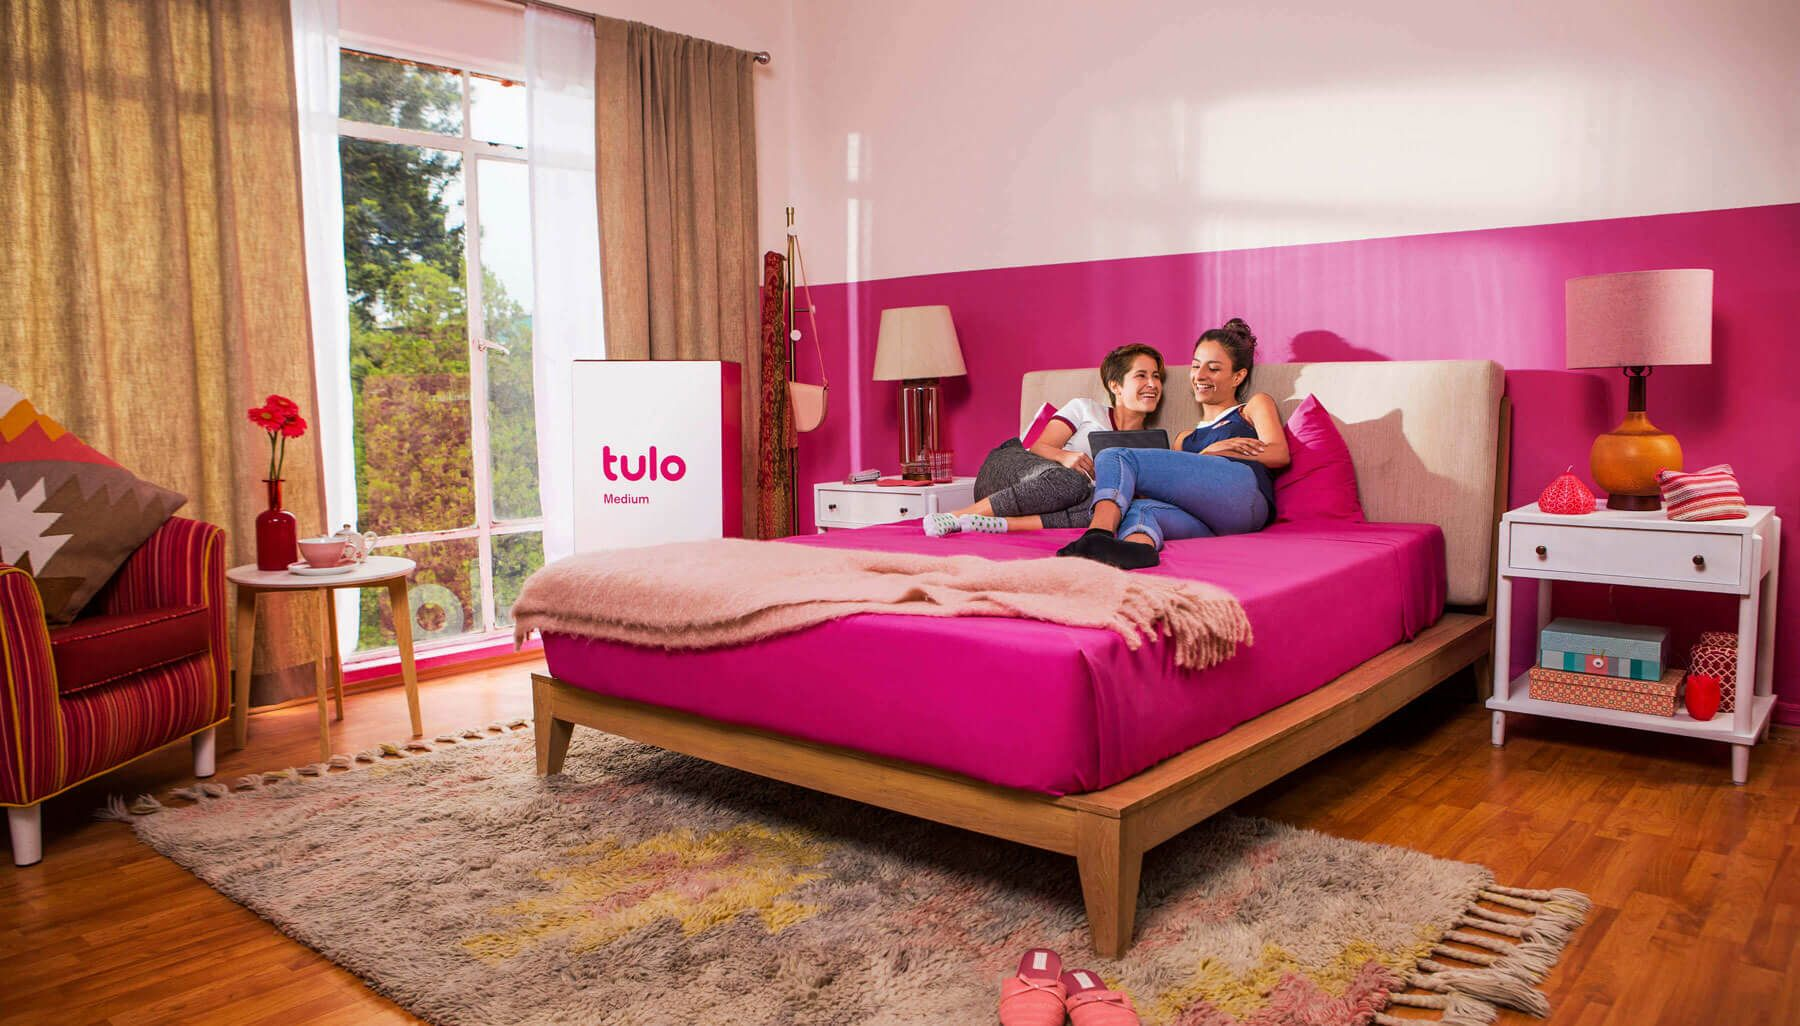 Review of Tulo Mattress for Our Readers (Promo Code Listed